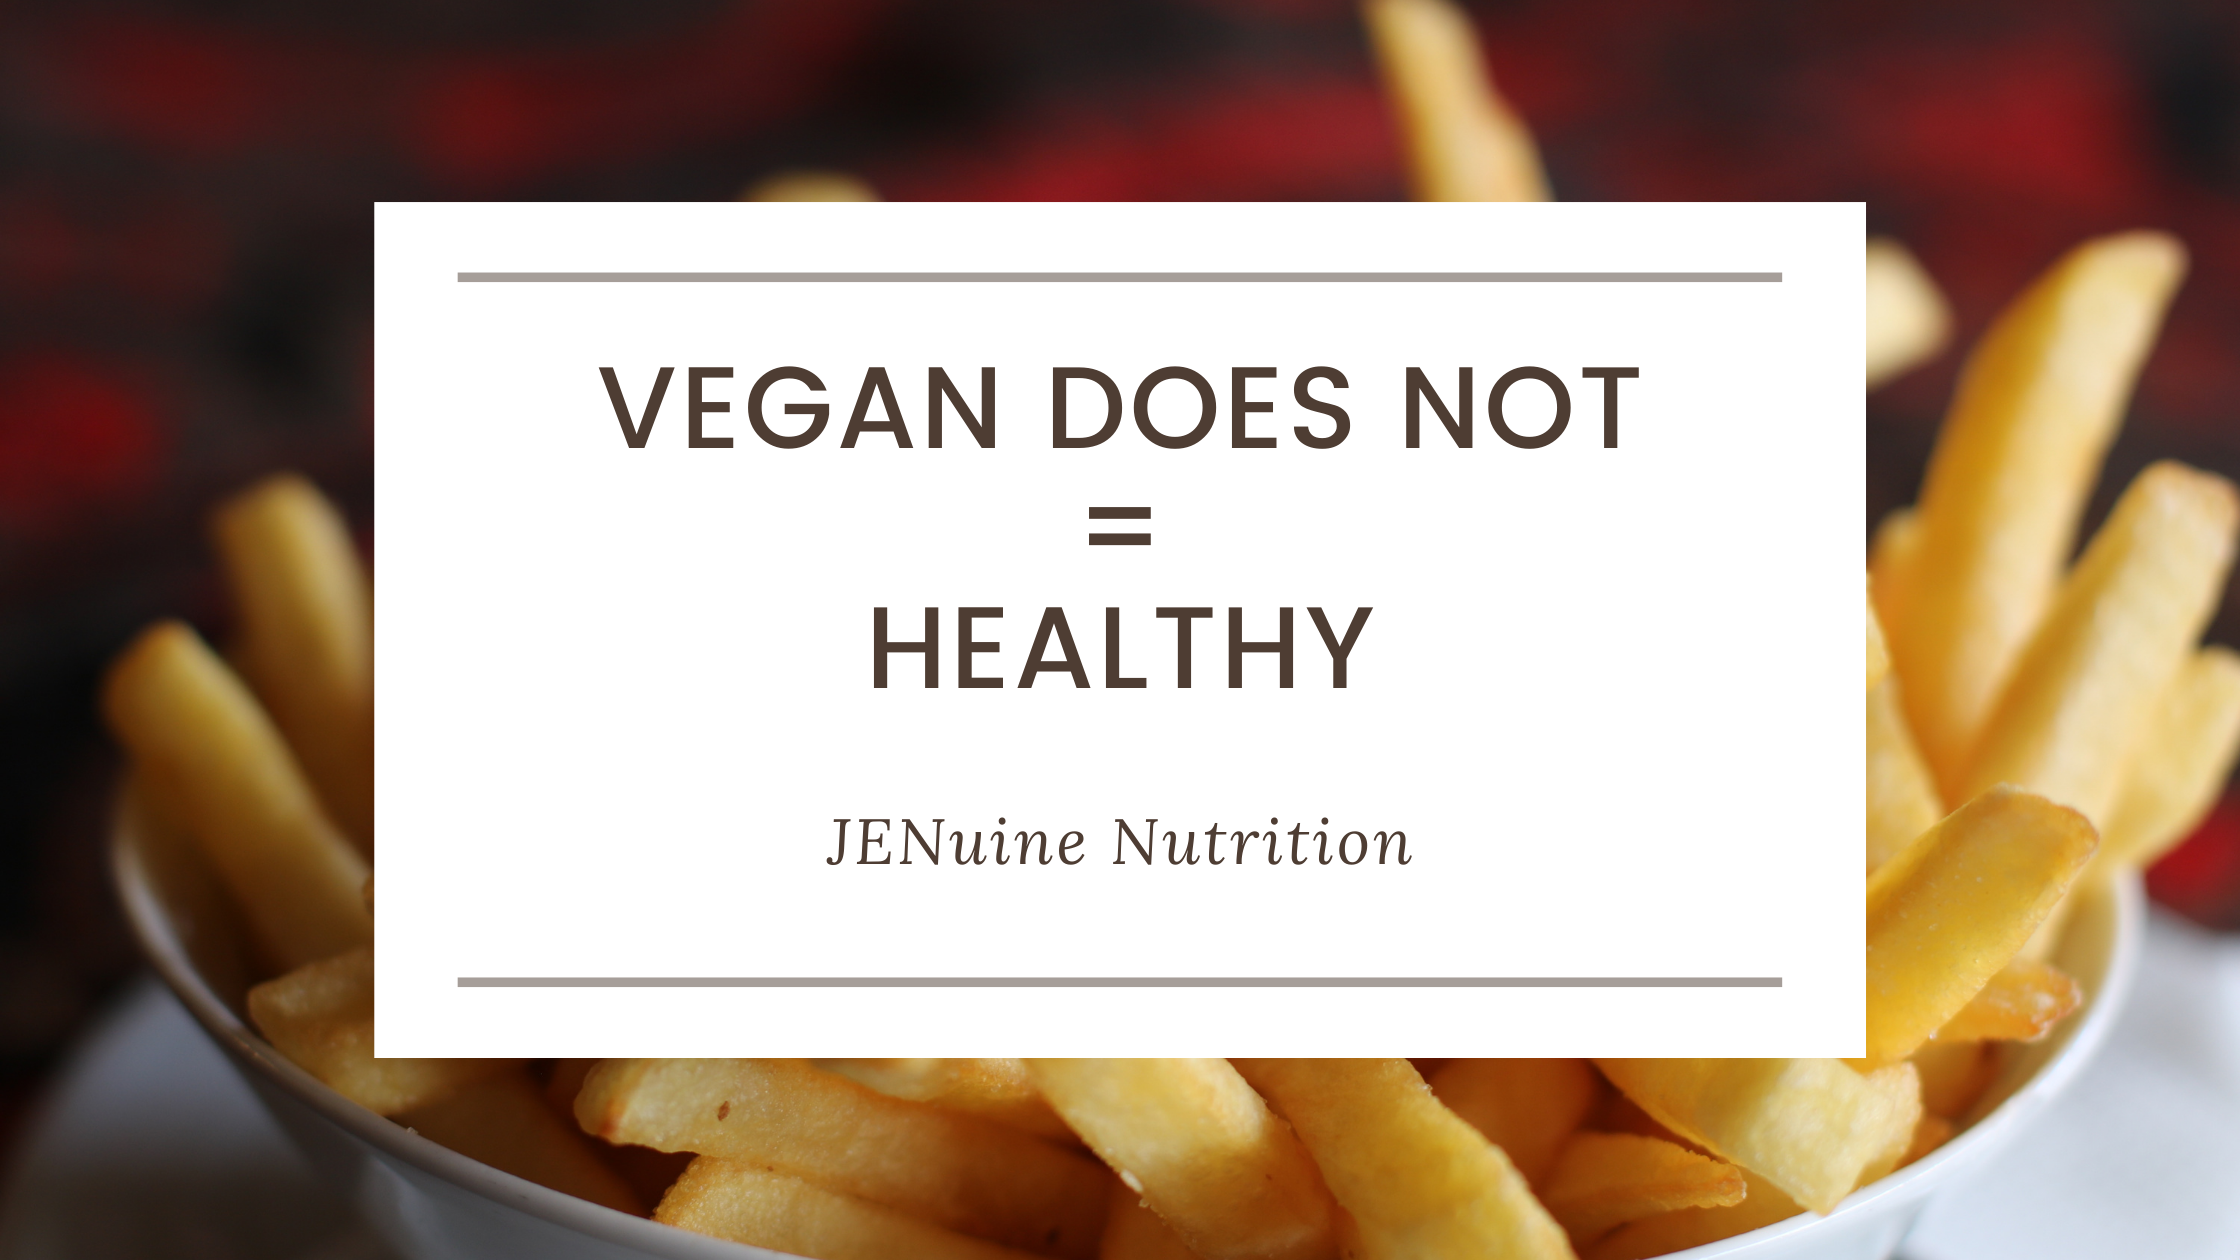 Vegan Does Not Equal Healthy